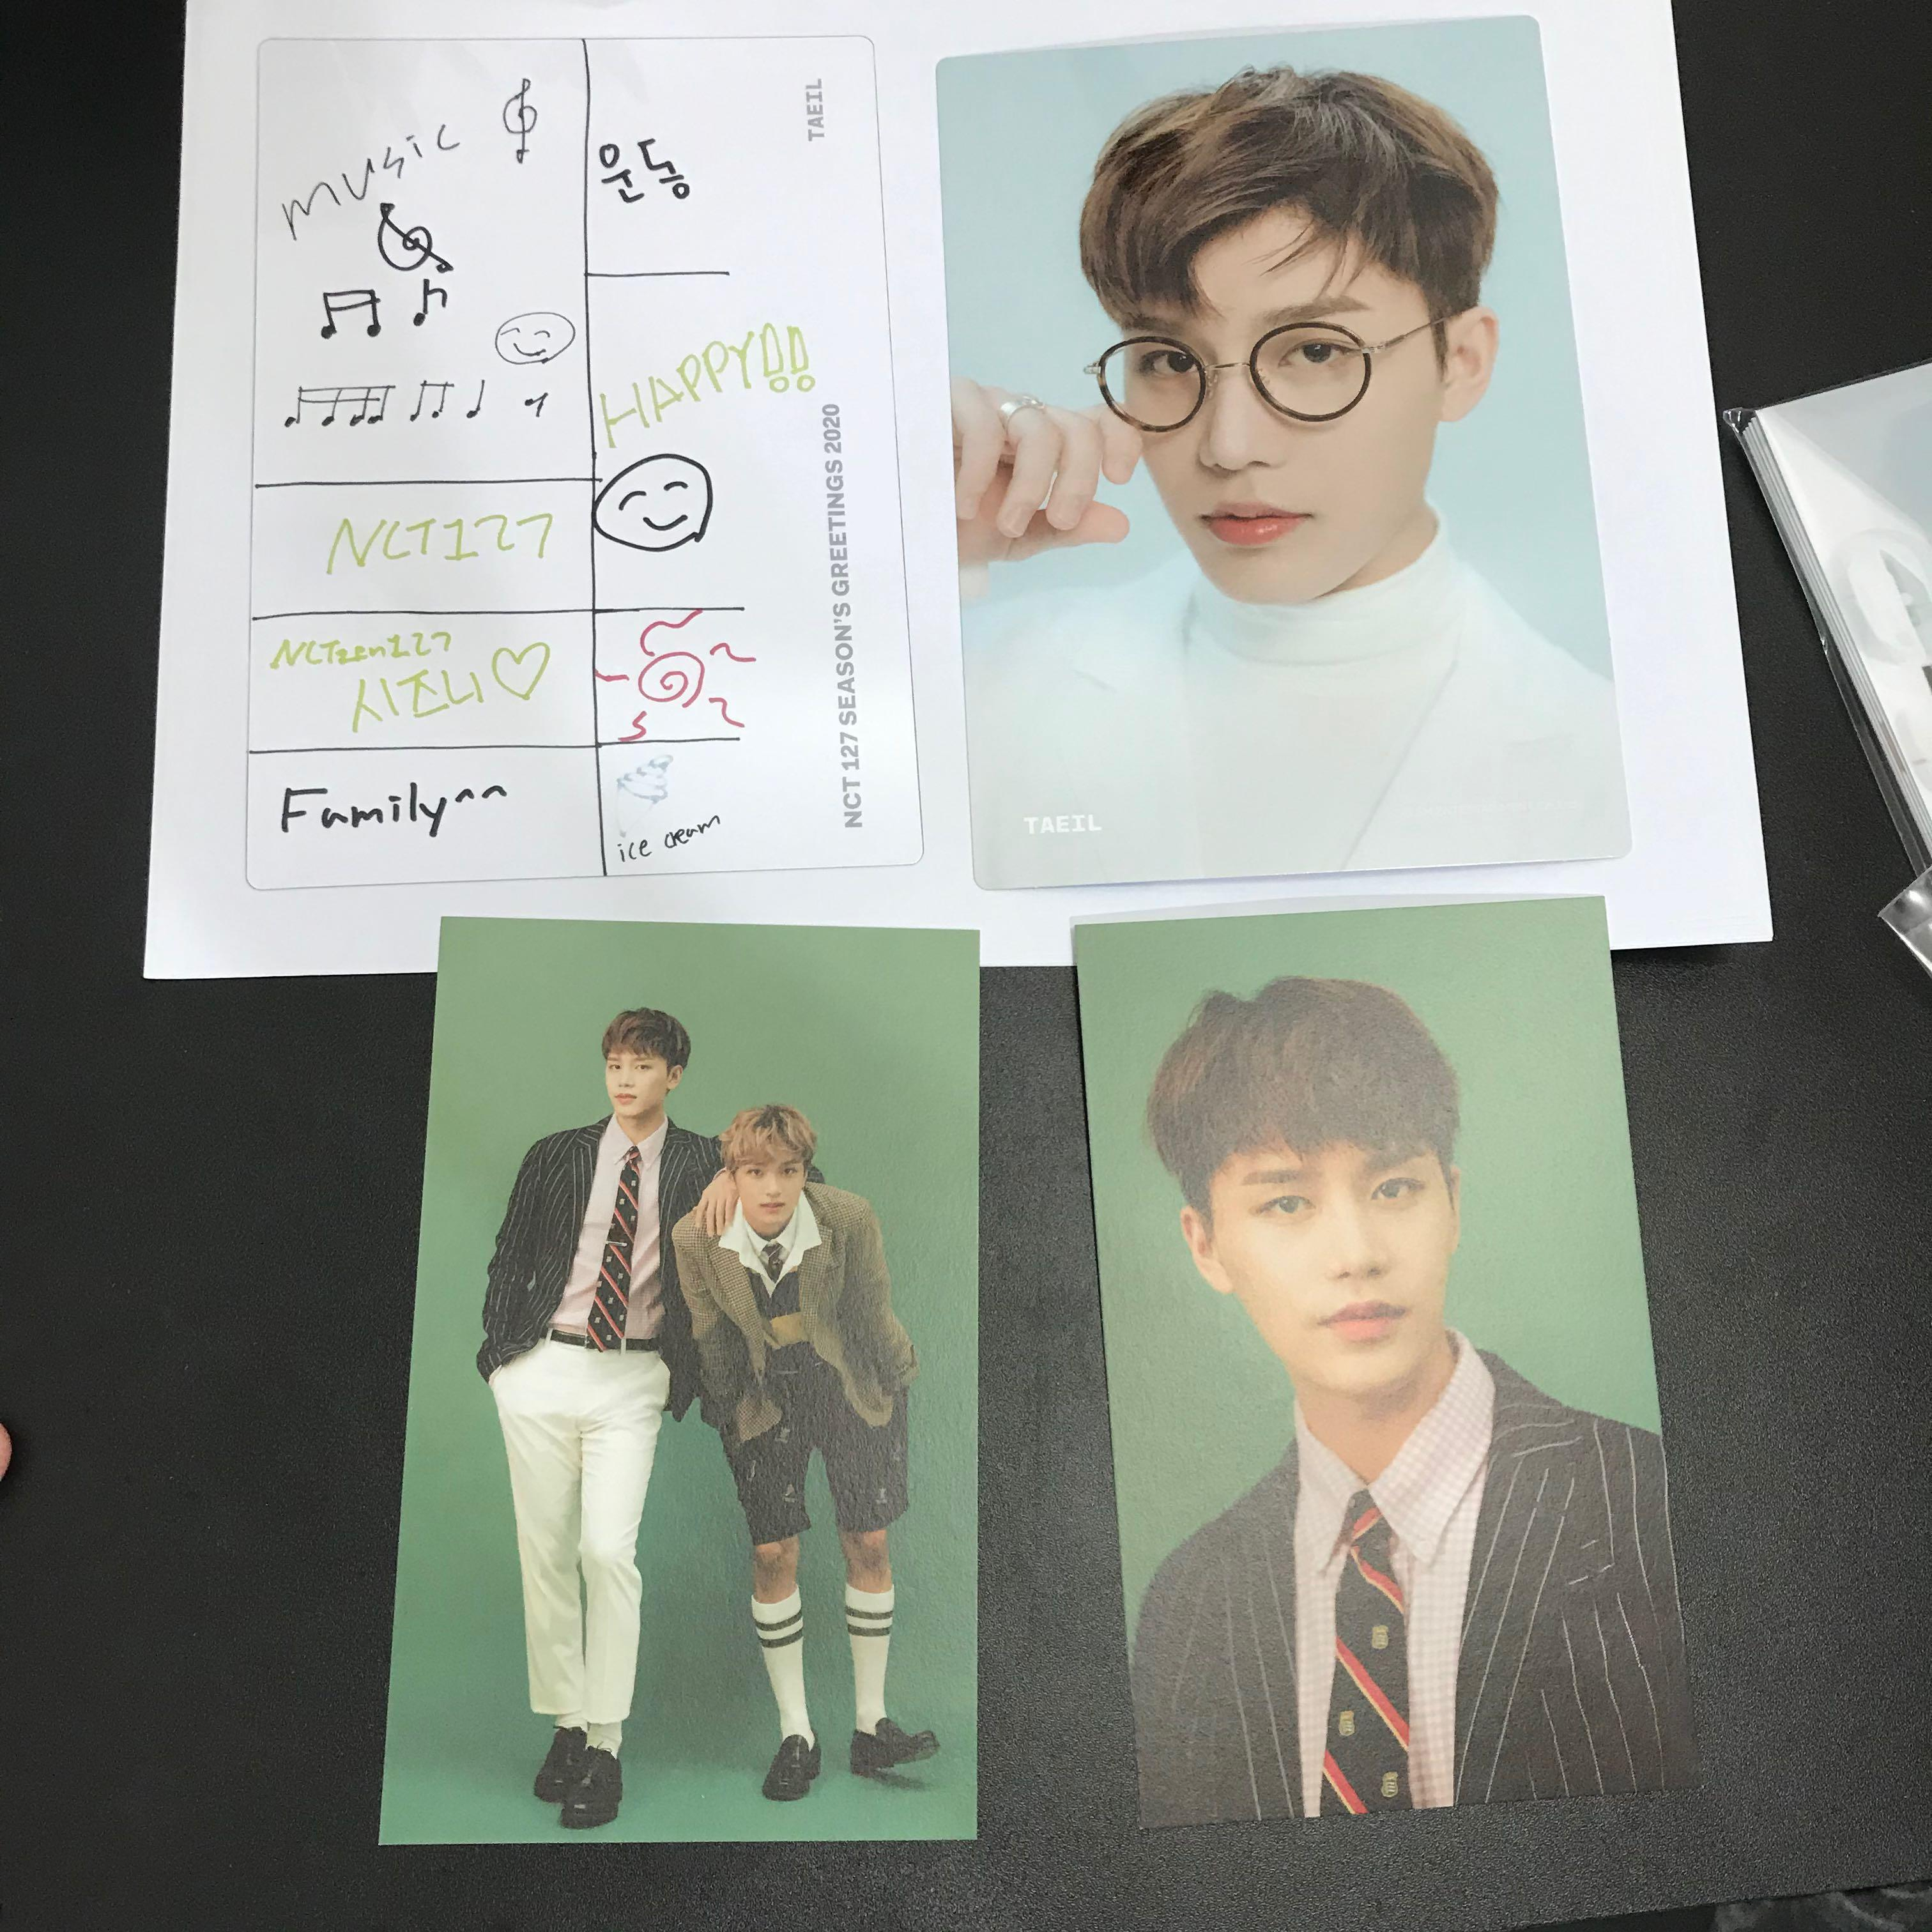 NCT127 TAEIL SET - SEASONS GREETINGS 2020 OFFICIAL POSTCARD AND ELEMENT CARD